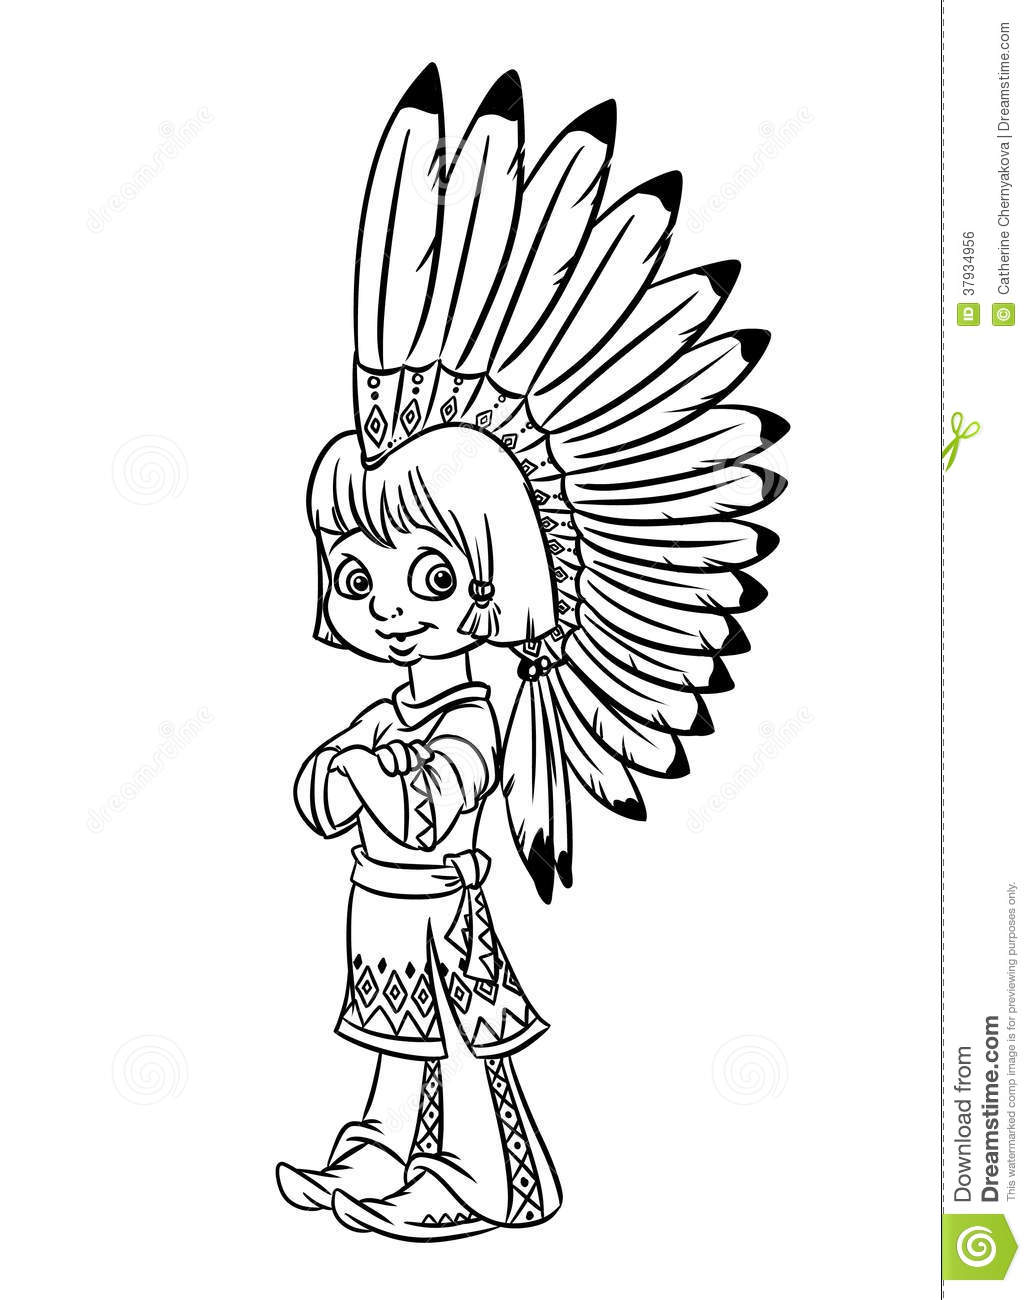 Indian Chief Boy Illustration Coloring Pages Royalty Free